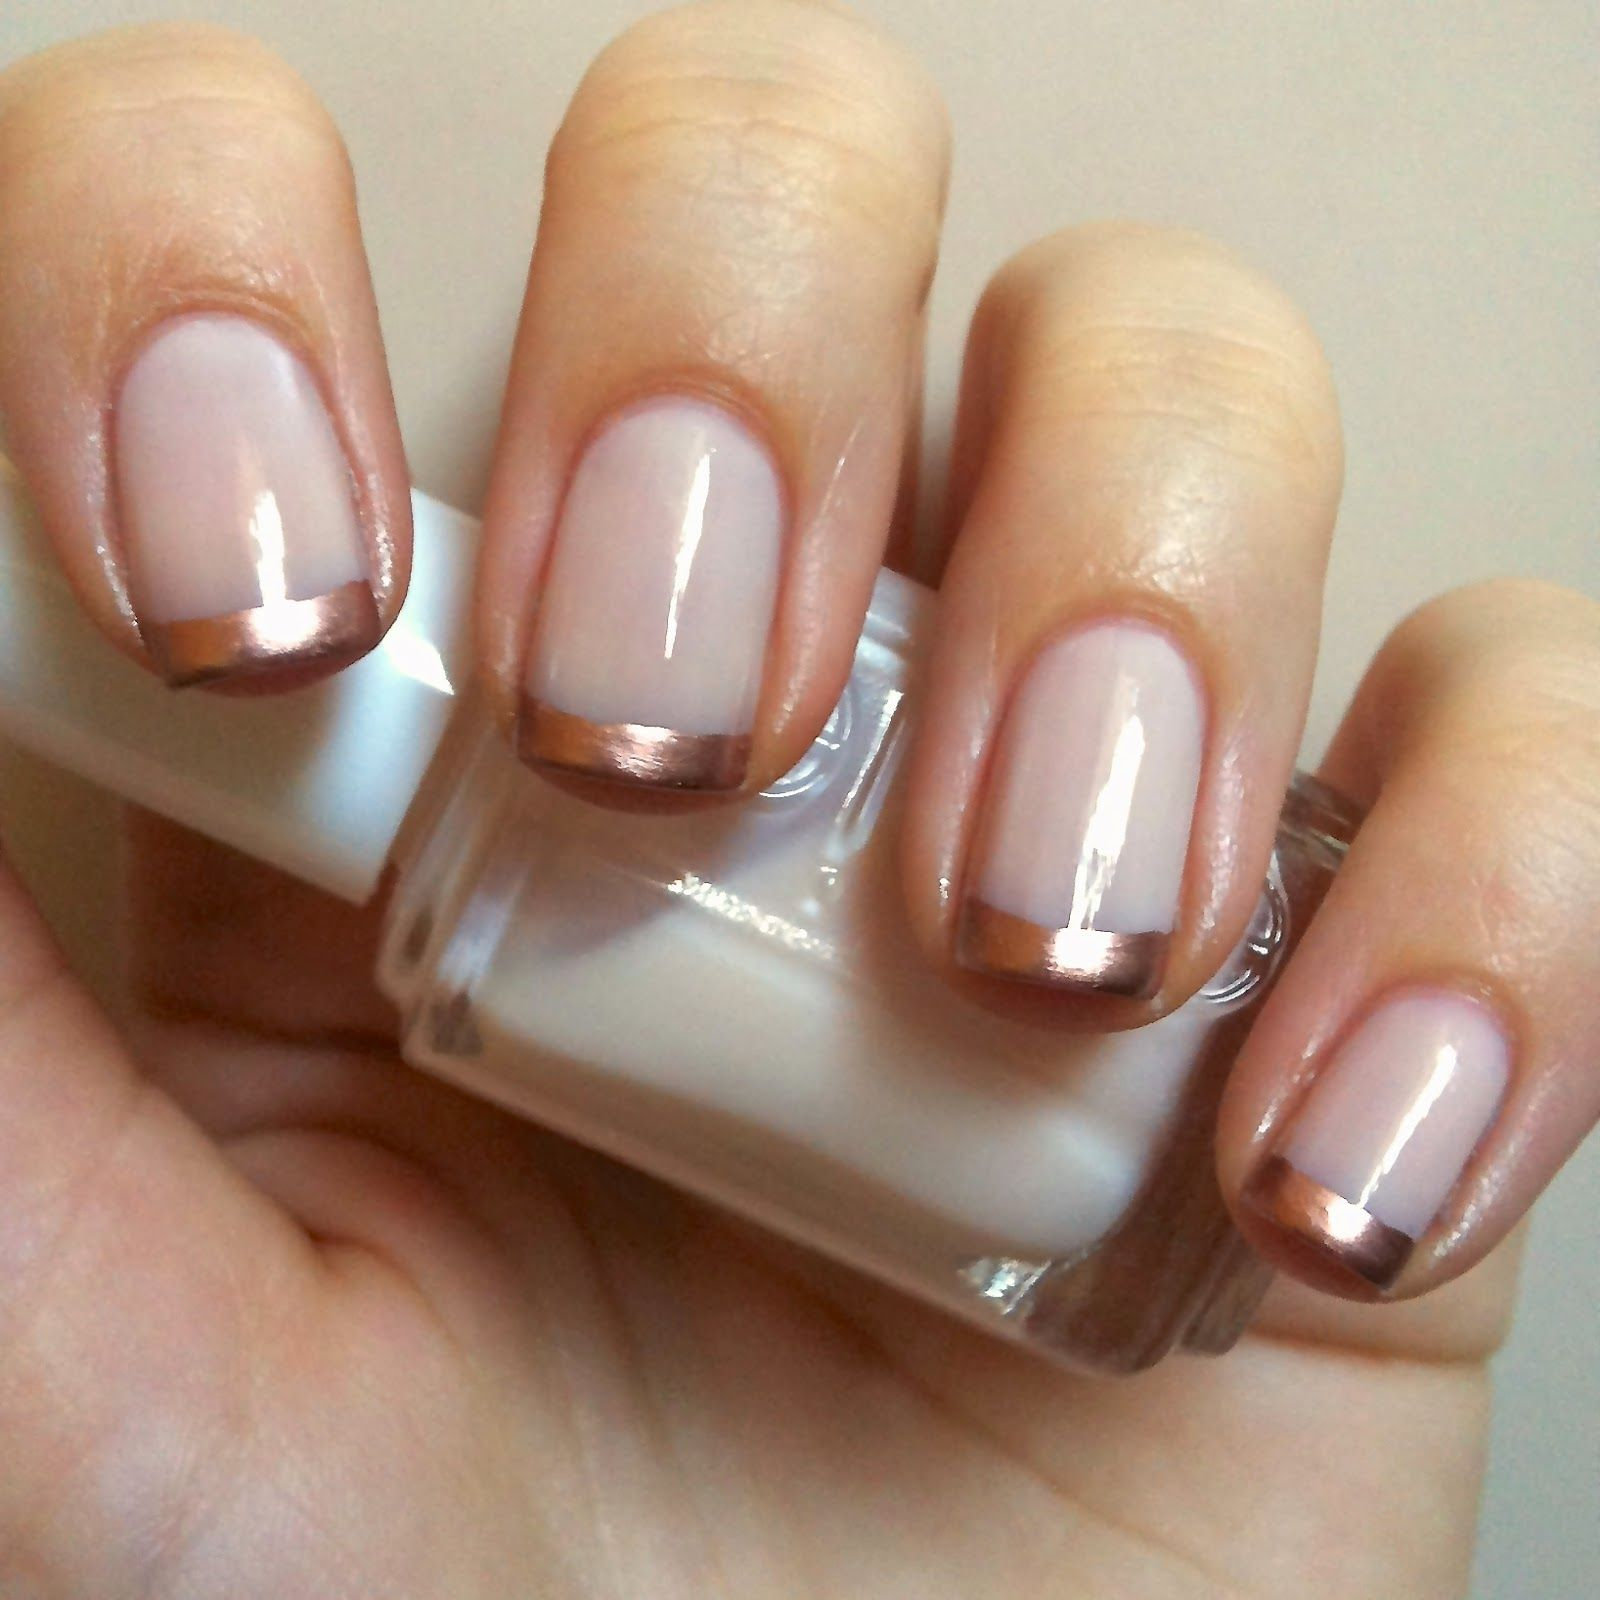 Nails Always Polished: Rose Gold French Manicure | To Wear~spring ...